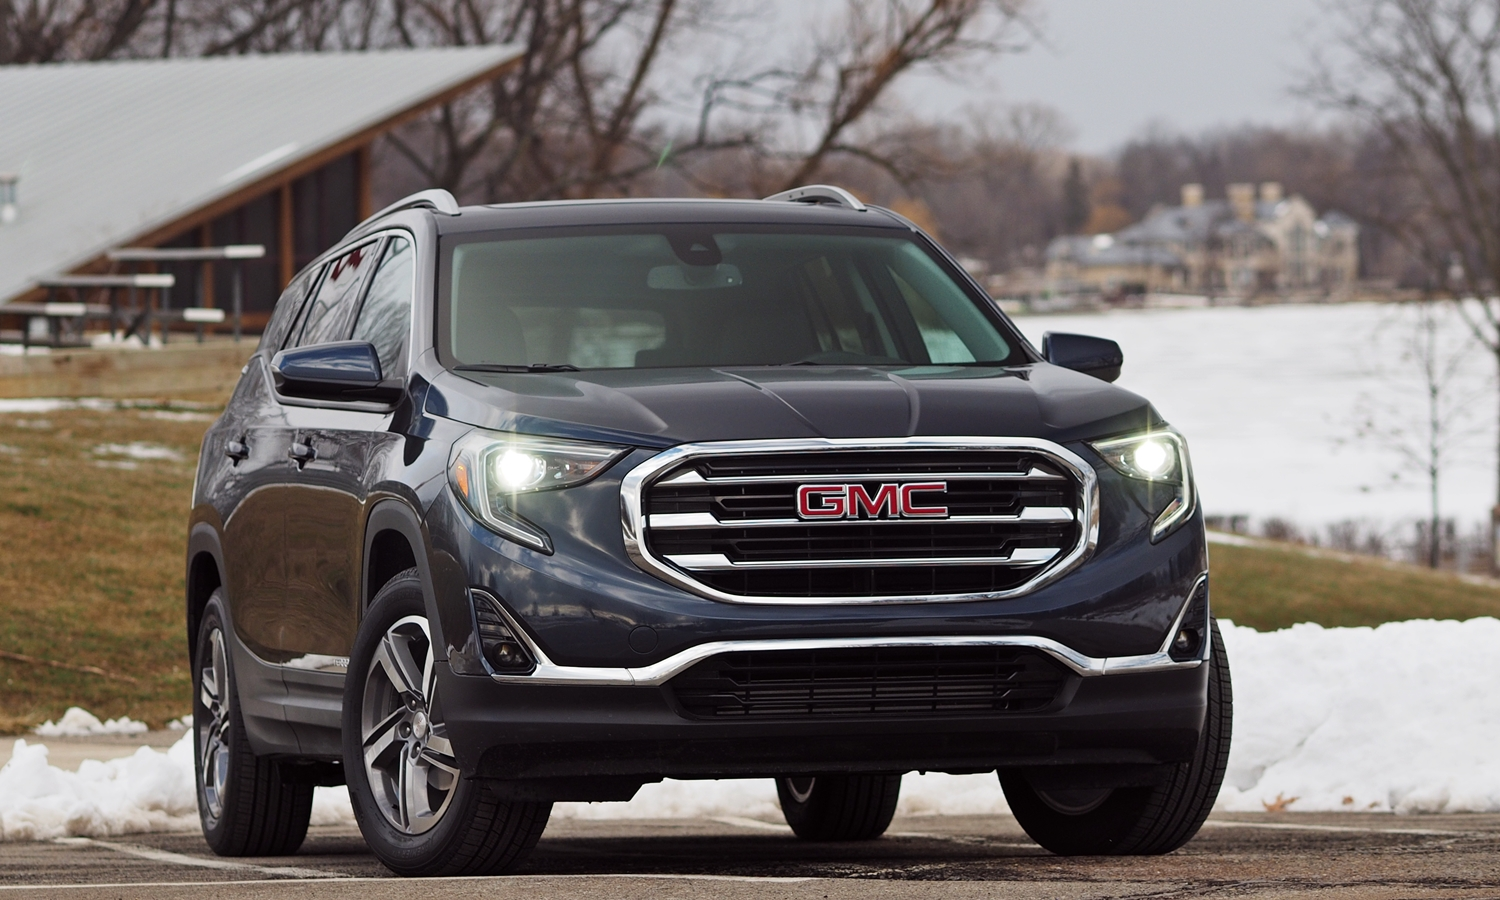 GMC Terrain Photos: 2018 GMC Terrain front view f/2.8